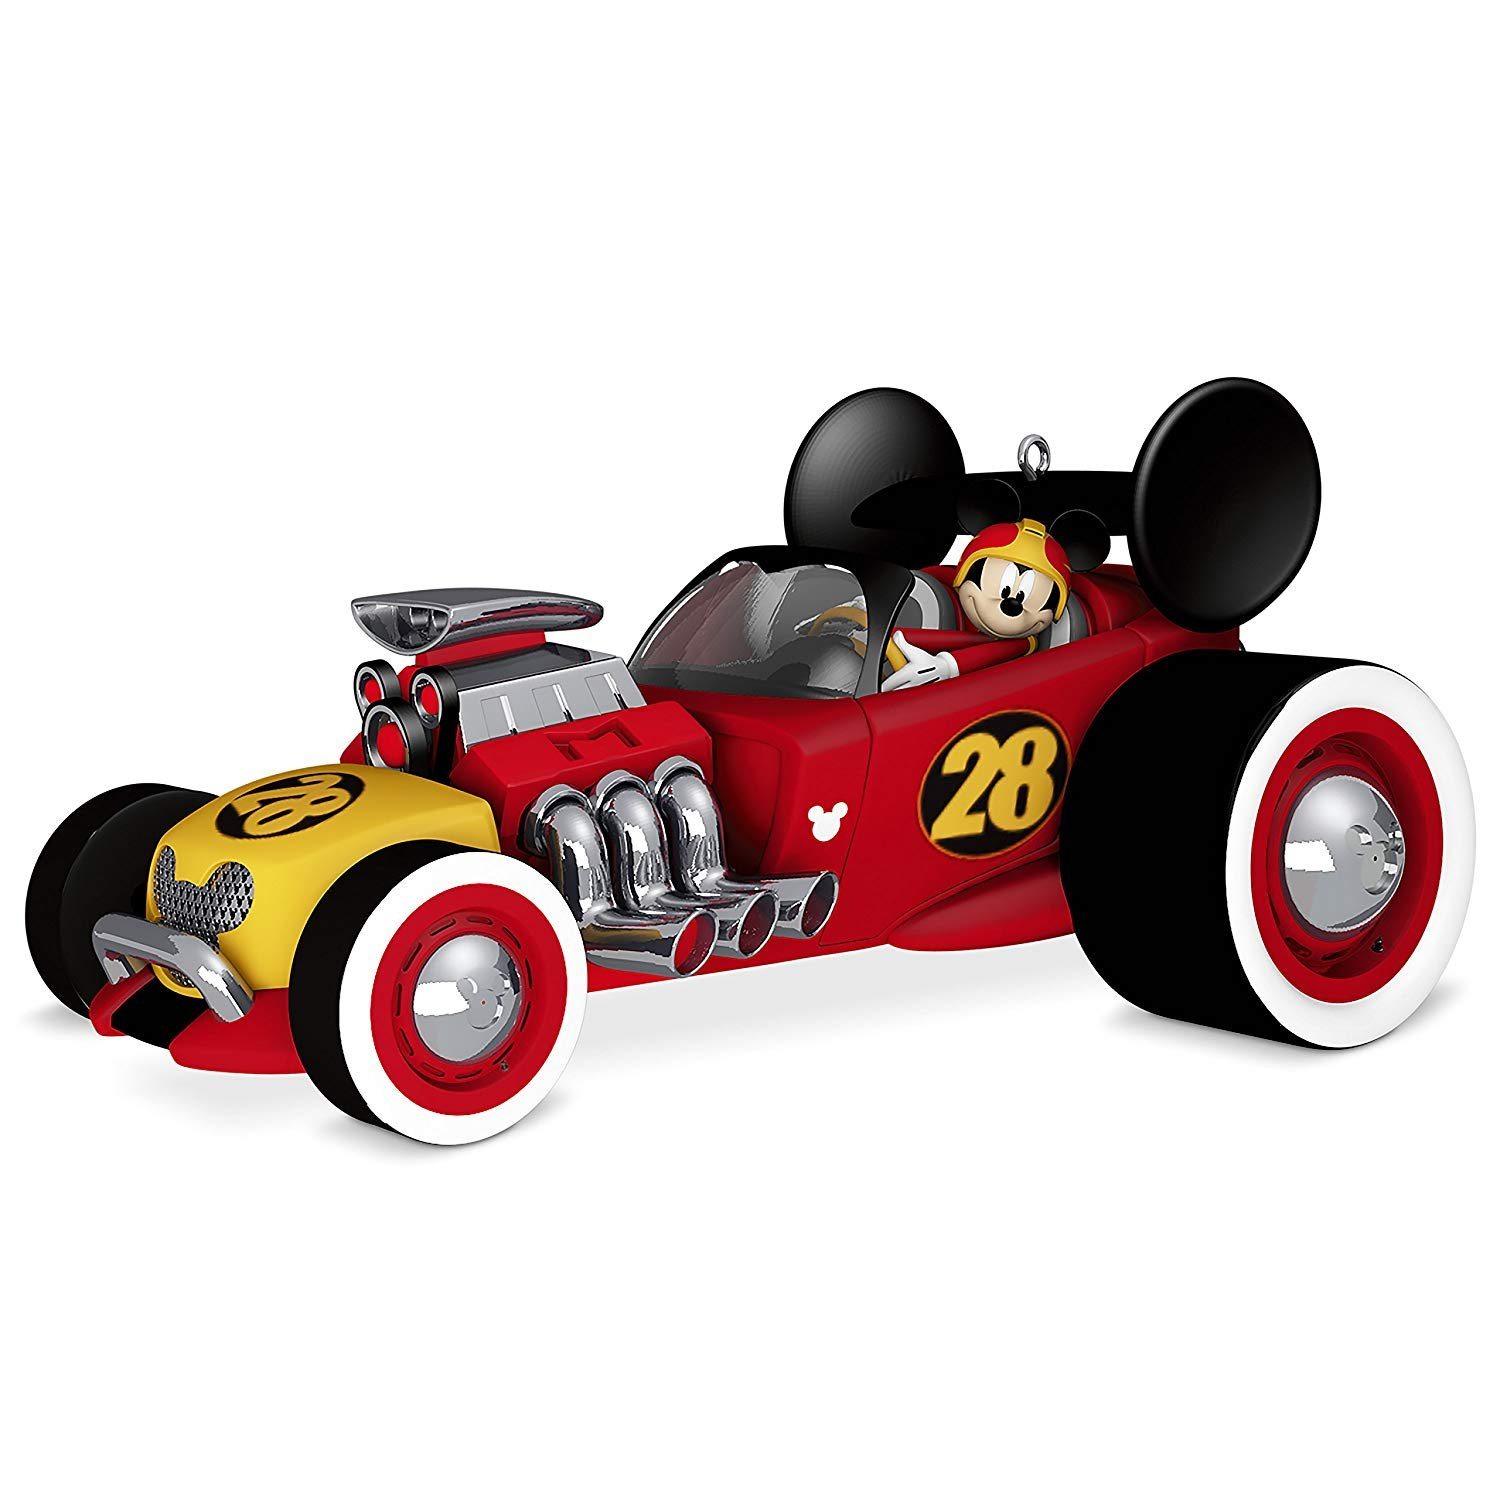 Disney Roadster Mickey Mouse Christmas Ornament Race Car ornament set of 6